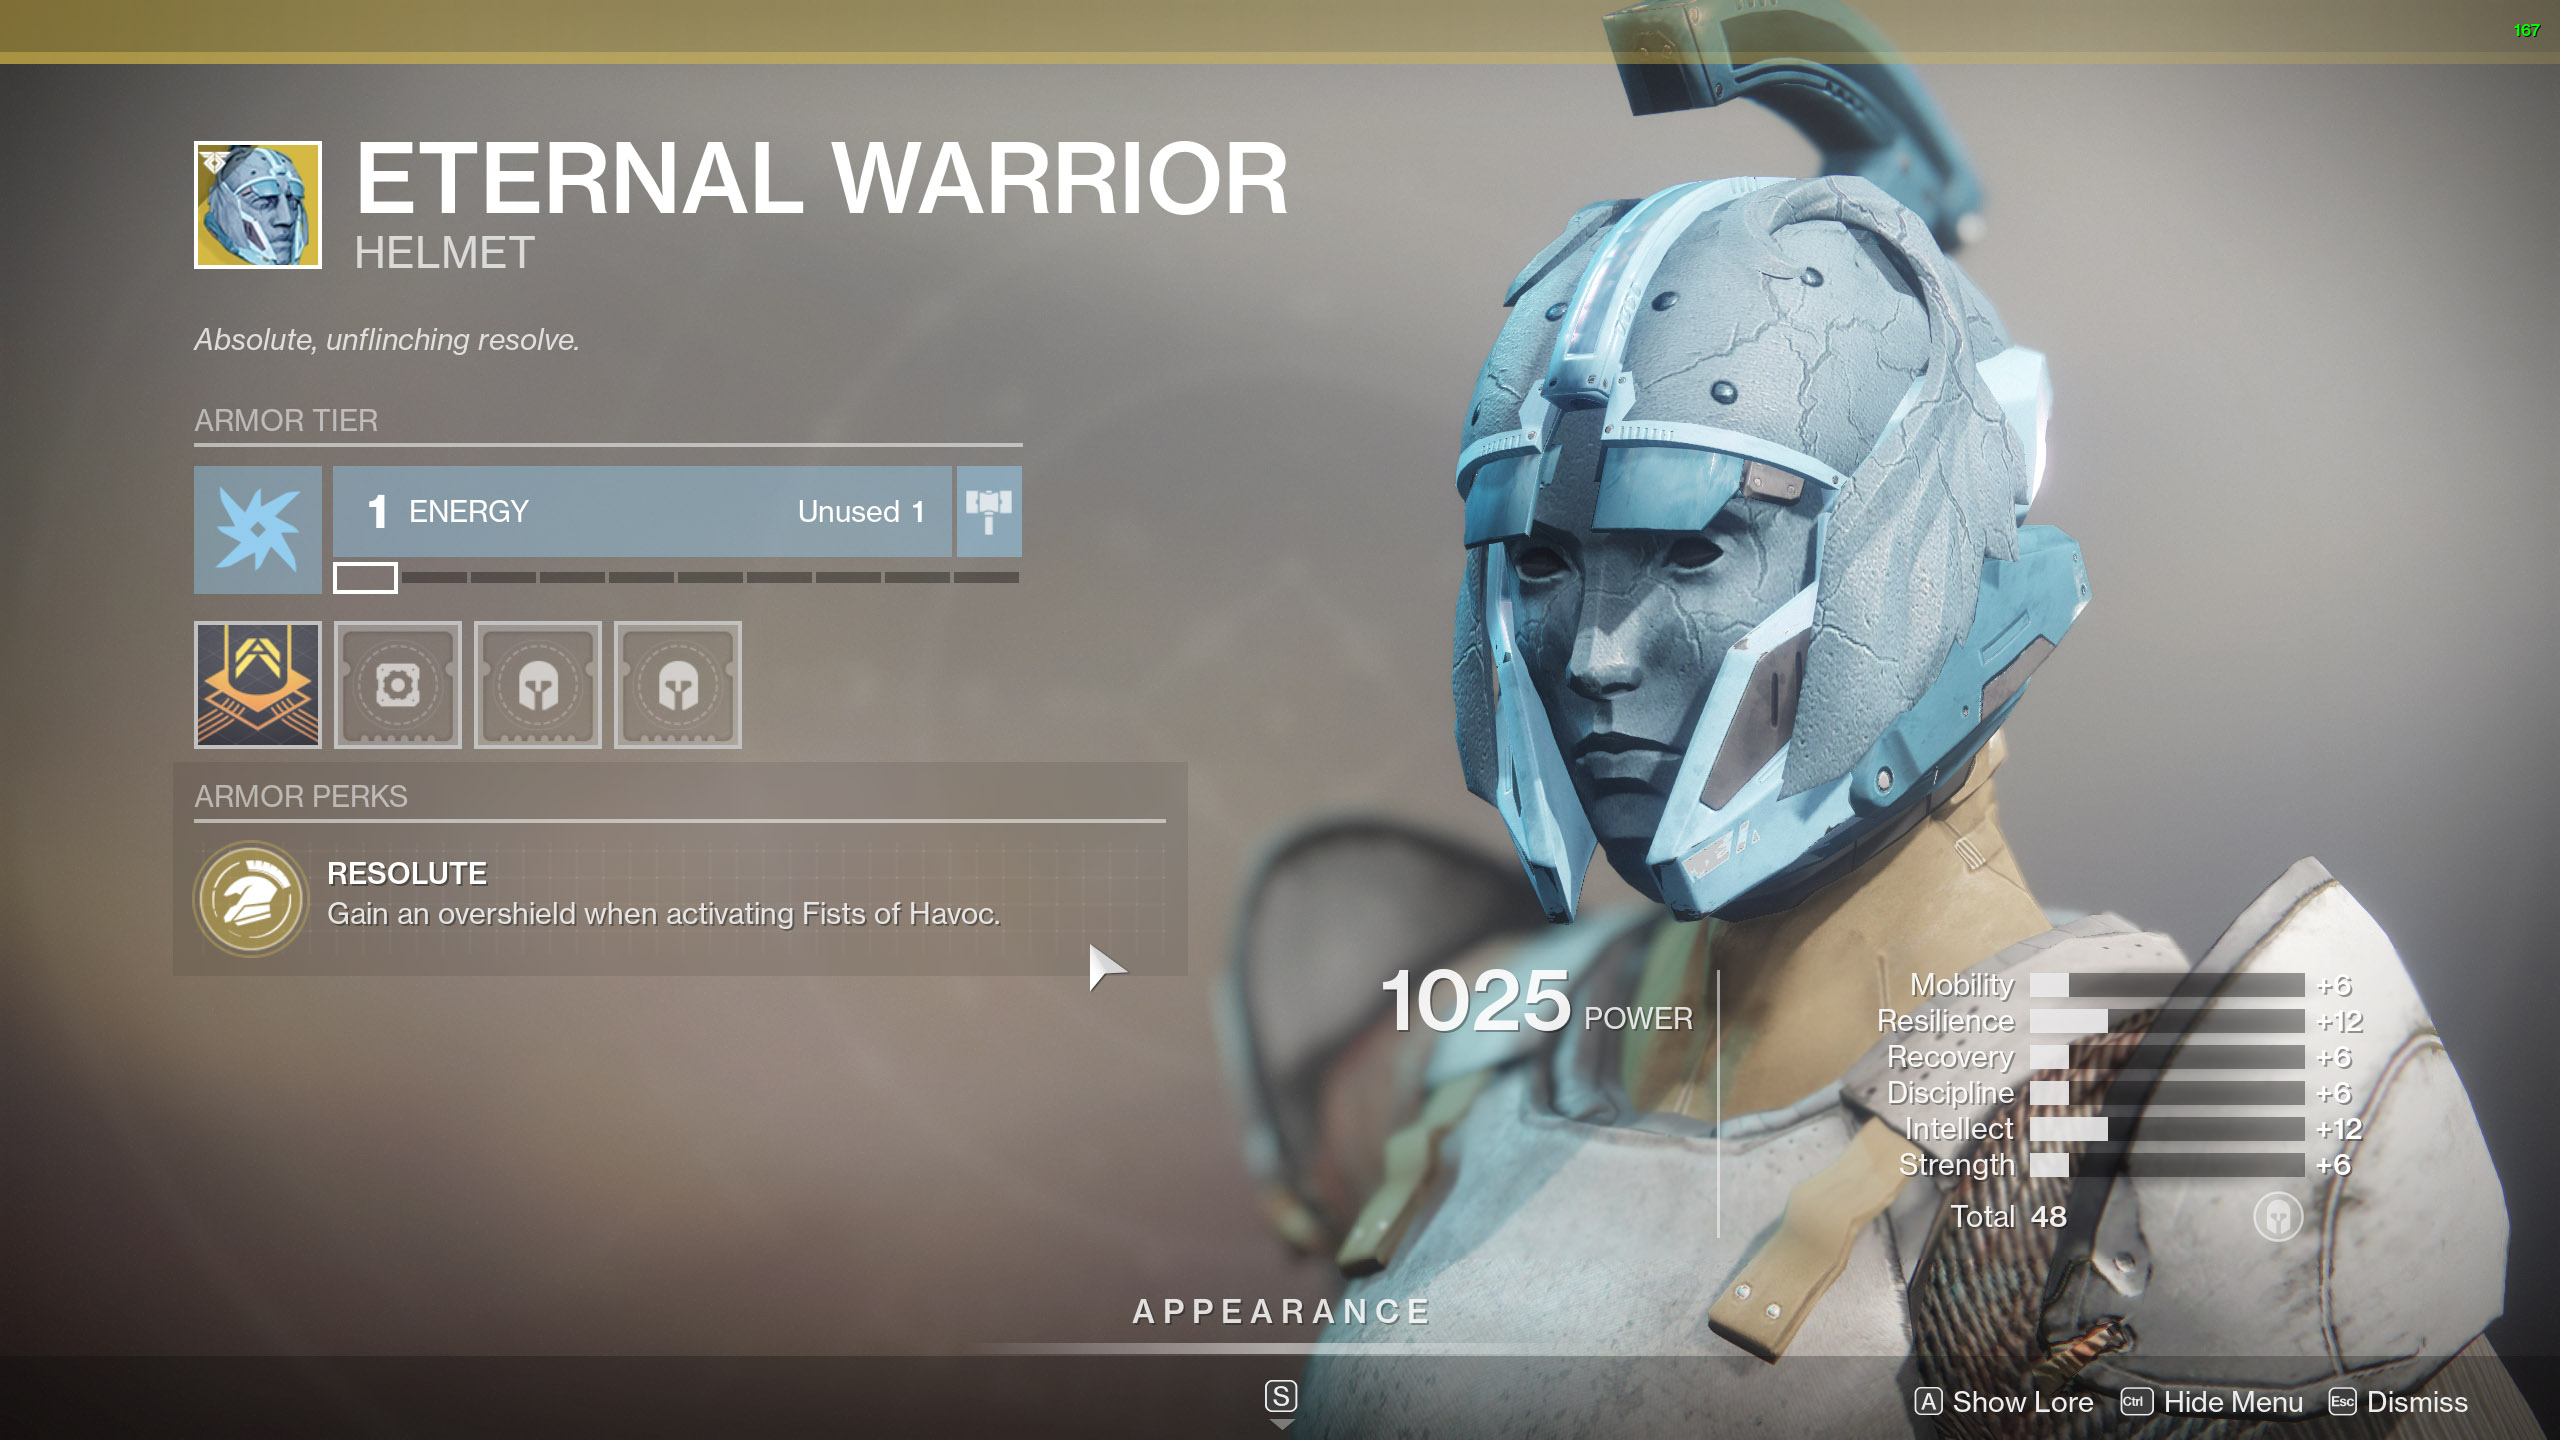 Destiny 2 Exotic Titan Armor Eternal Warrior